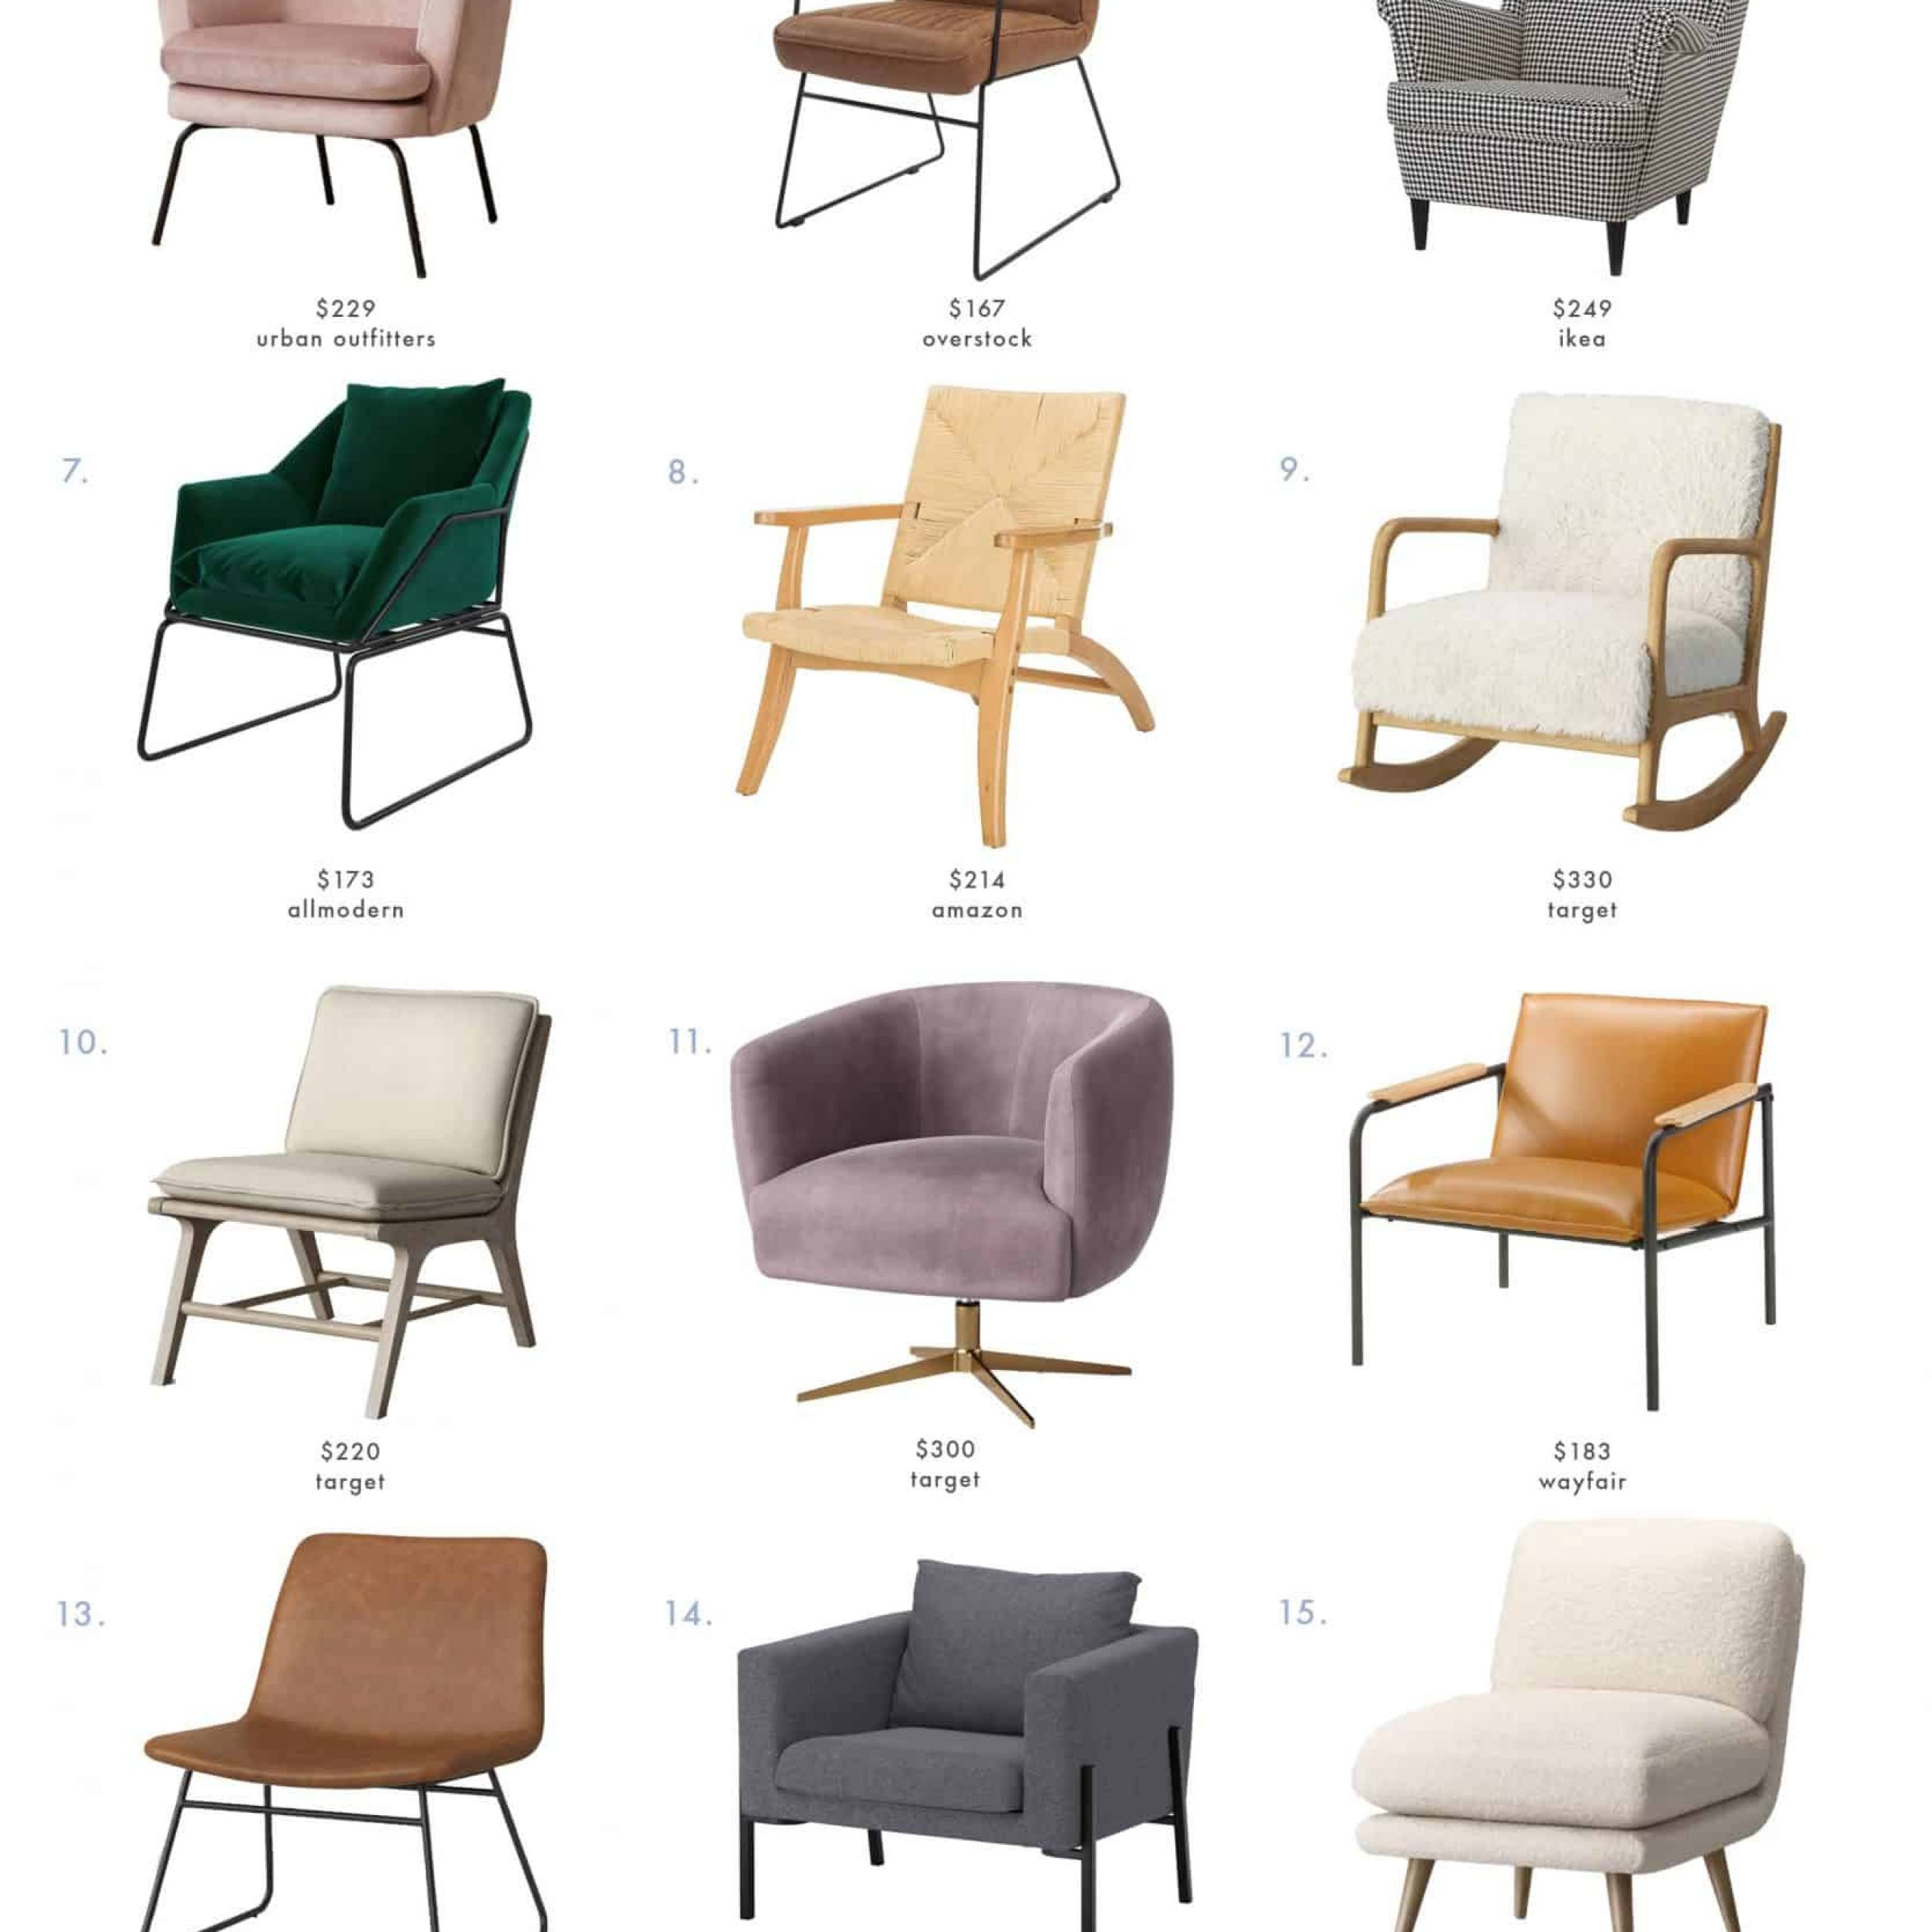 The Ultimate Budget Friendly Living Room Furniture Roundup Regarding Aalivia Slipper Chairs (View 8 of 15)